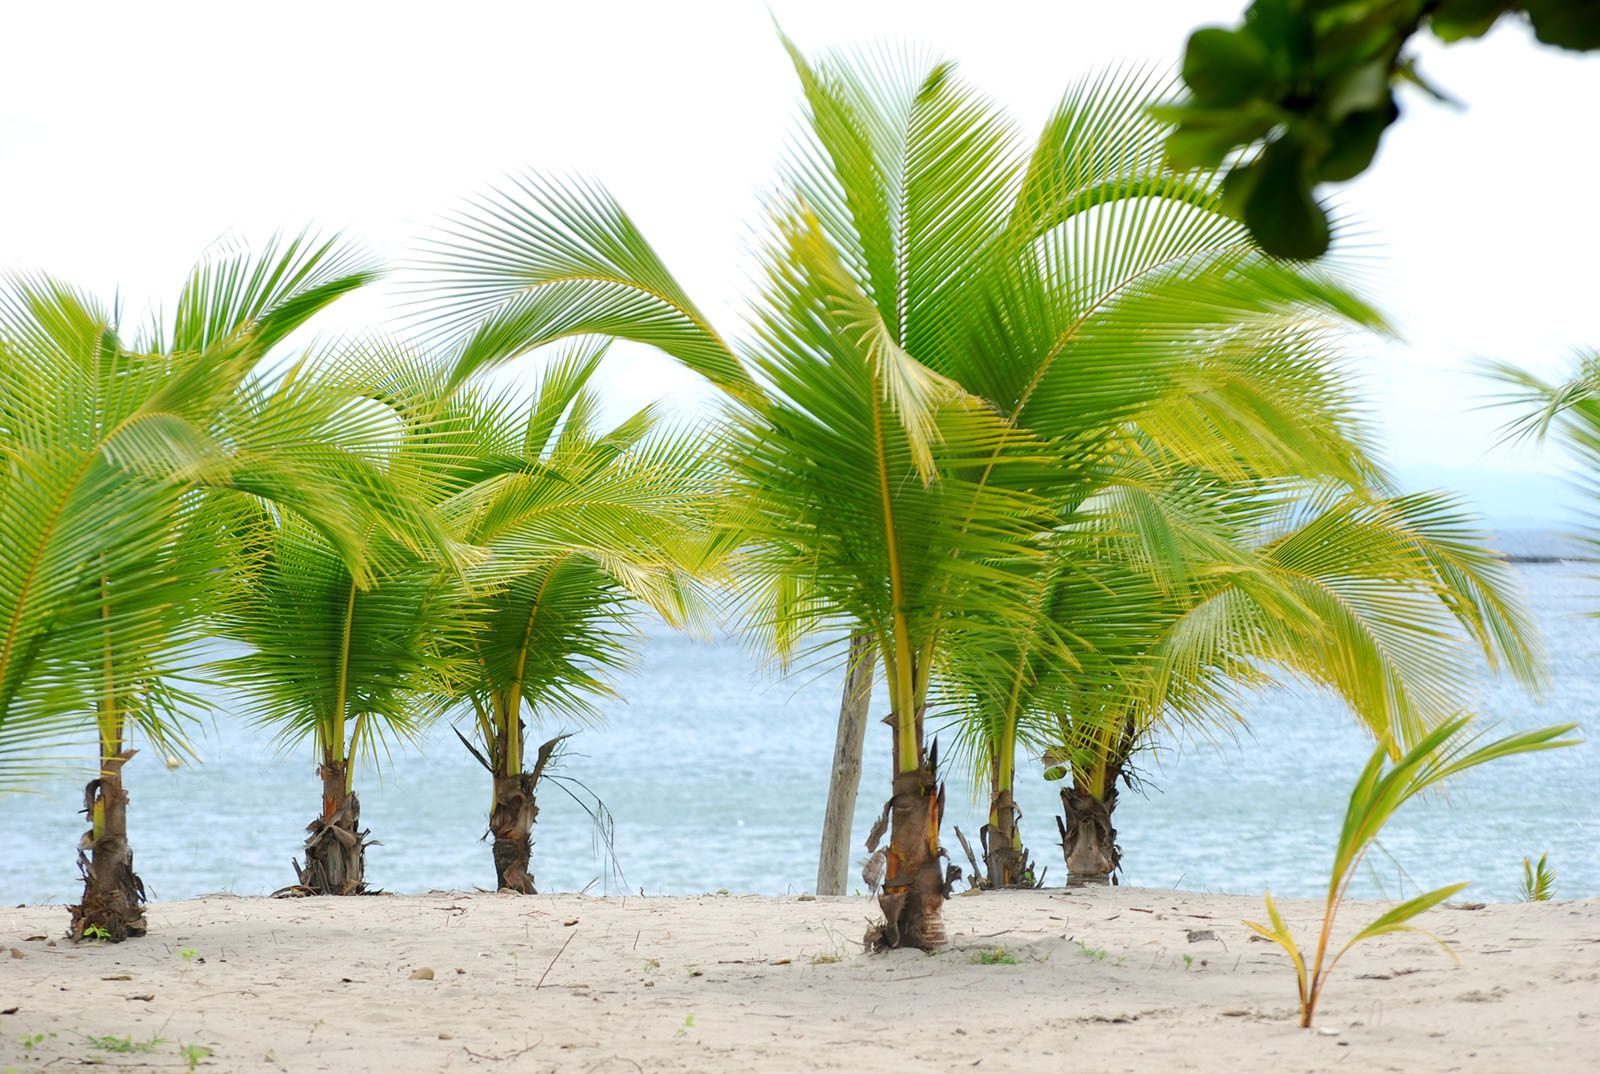 Pictures- of Different Types of Palm Trees